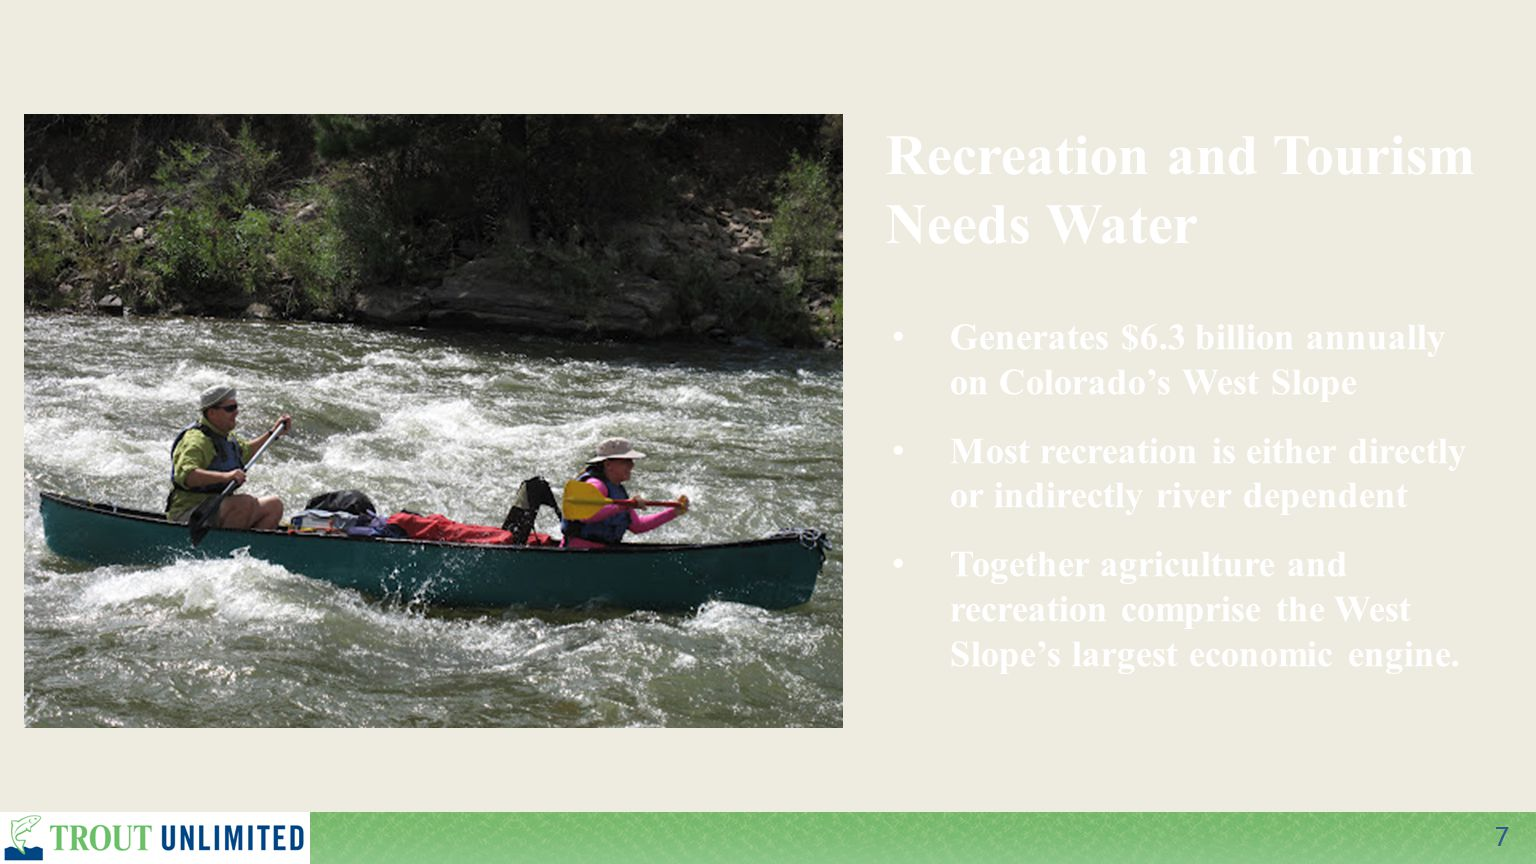 7 Recreation and Tourism Needs Water Generates $6.3 billion annually on Colorado's West Slope Most recreation is either directly or indirectly river dependent Together agriculture and recreation comprise the West Slope's largest economic engine.